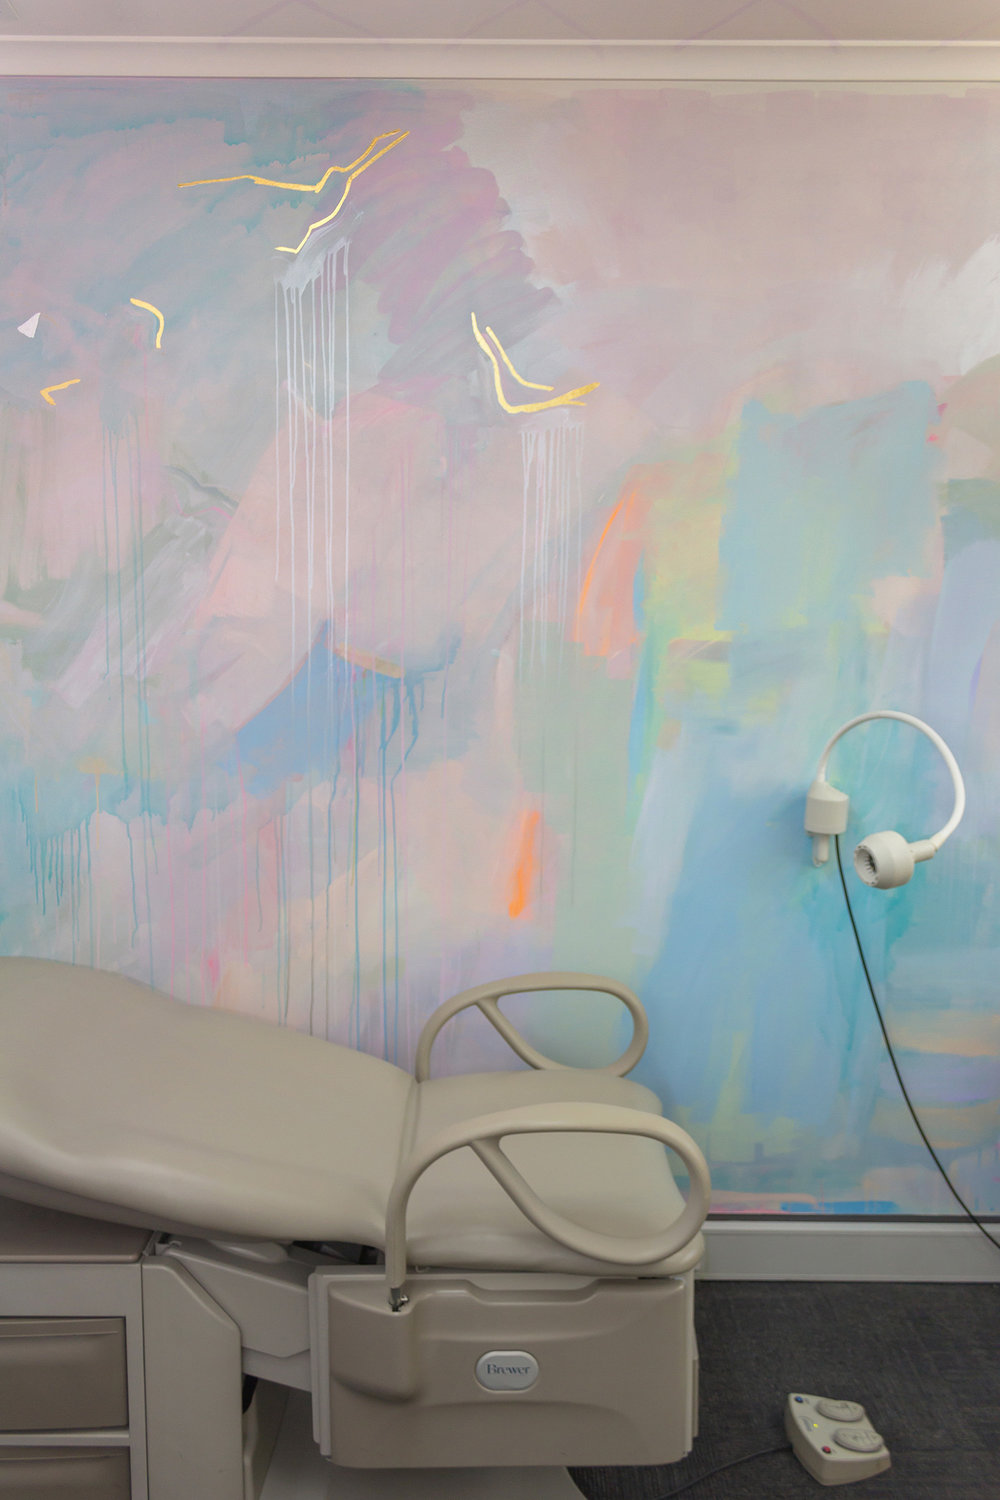 Pastel abstract mural painted in an OB/GYN office, featuring gold gilded birds flying across the wall and glowing metallic pink paint.